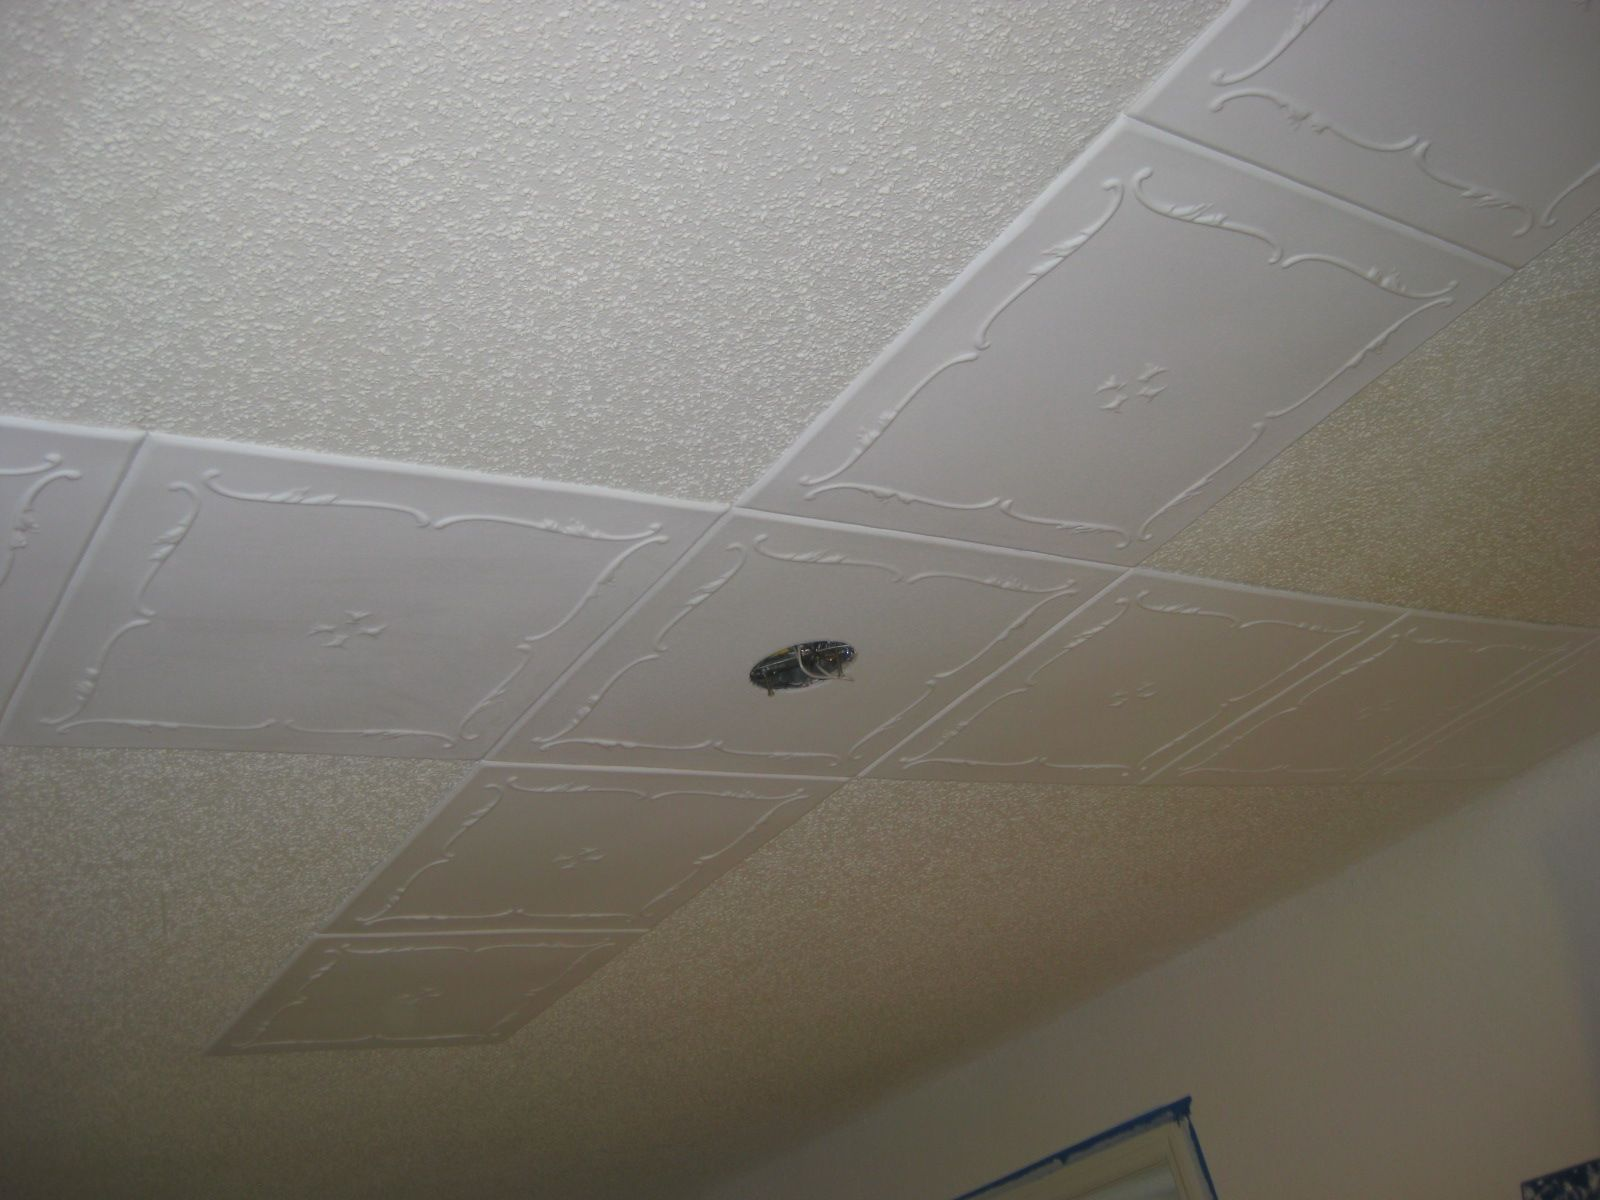 How to paint styrofoam ceiling tiles httpkirwinebar how to paint styrofoam ceiling tiles httpkirwinebar dailygadgetfo Choice Image